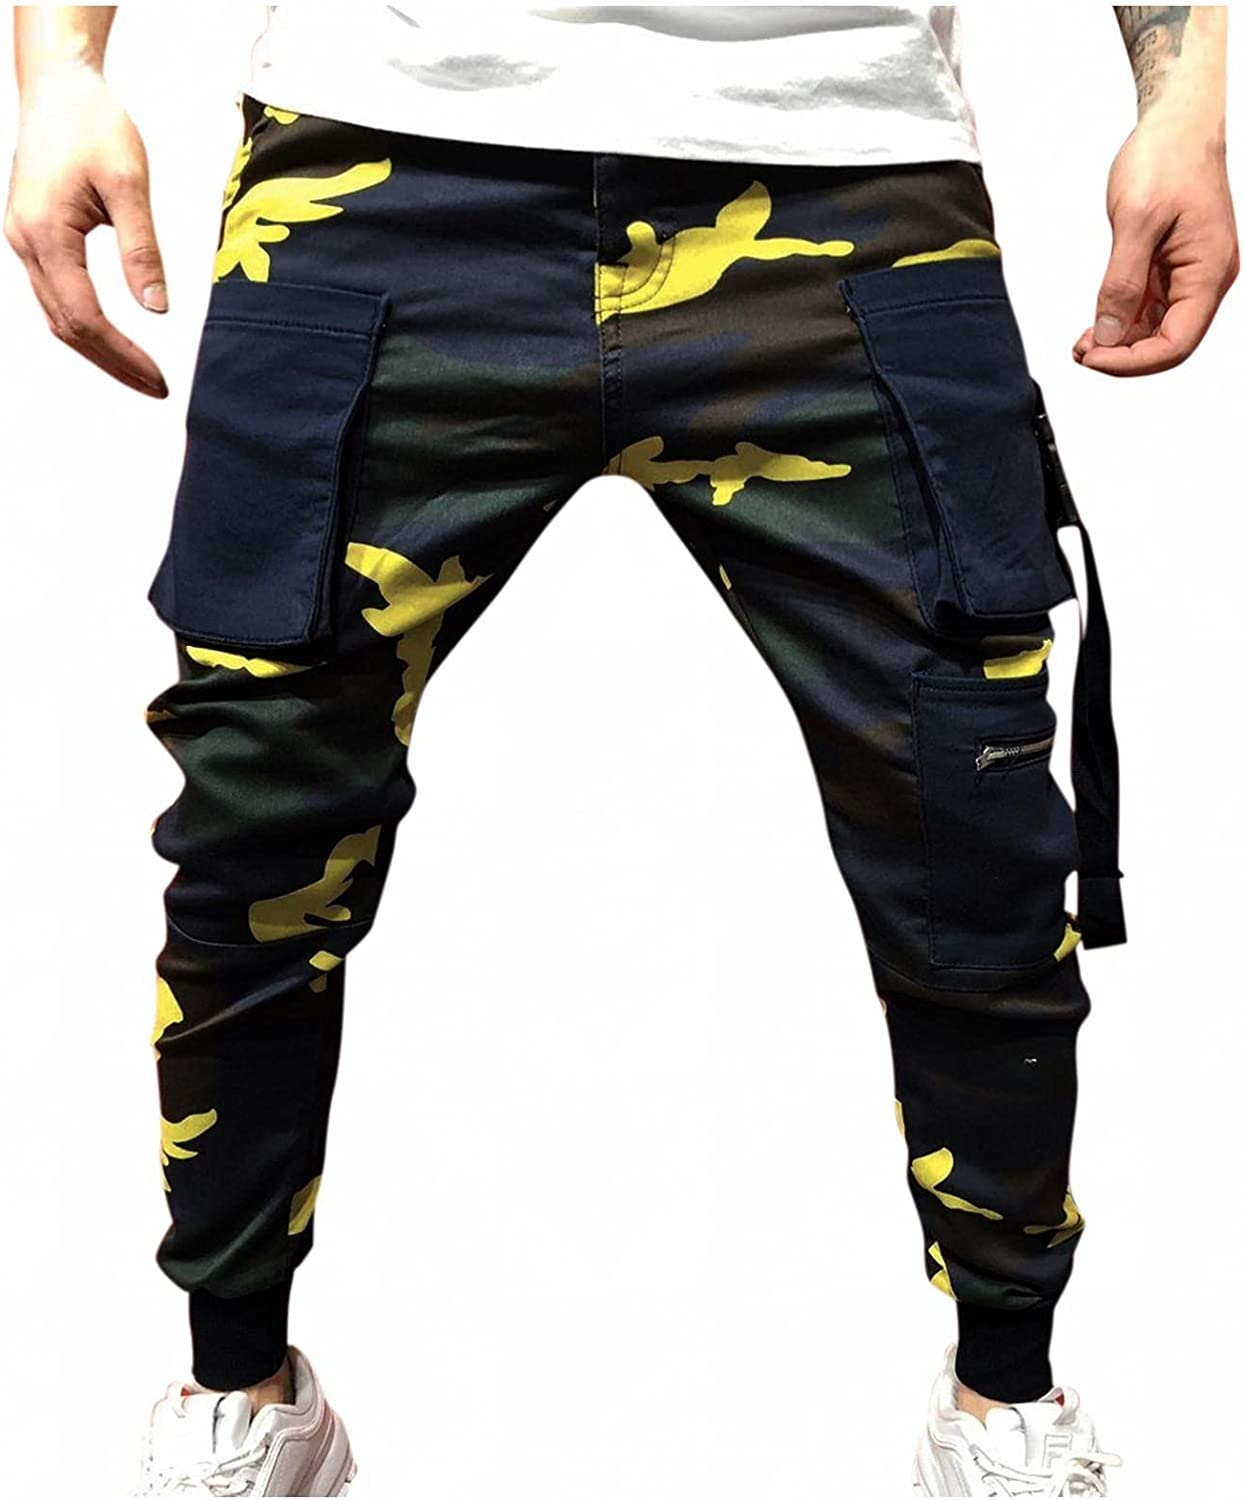 Beshion Sweatpants for Men Slim Fit Jogger Cargo Pants Mid-Waist Drawstring Casual Athletic Running Trousers with Pocket